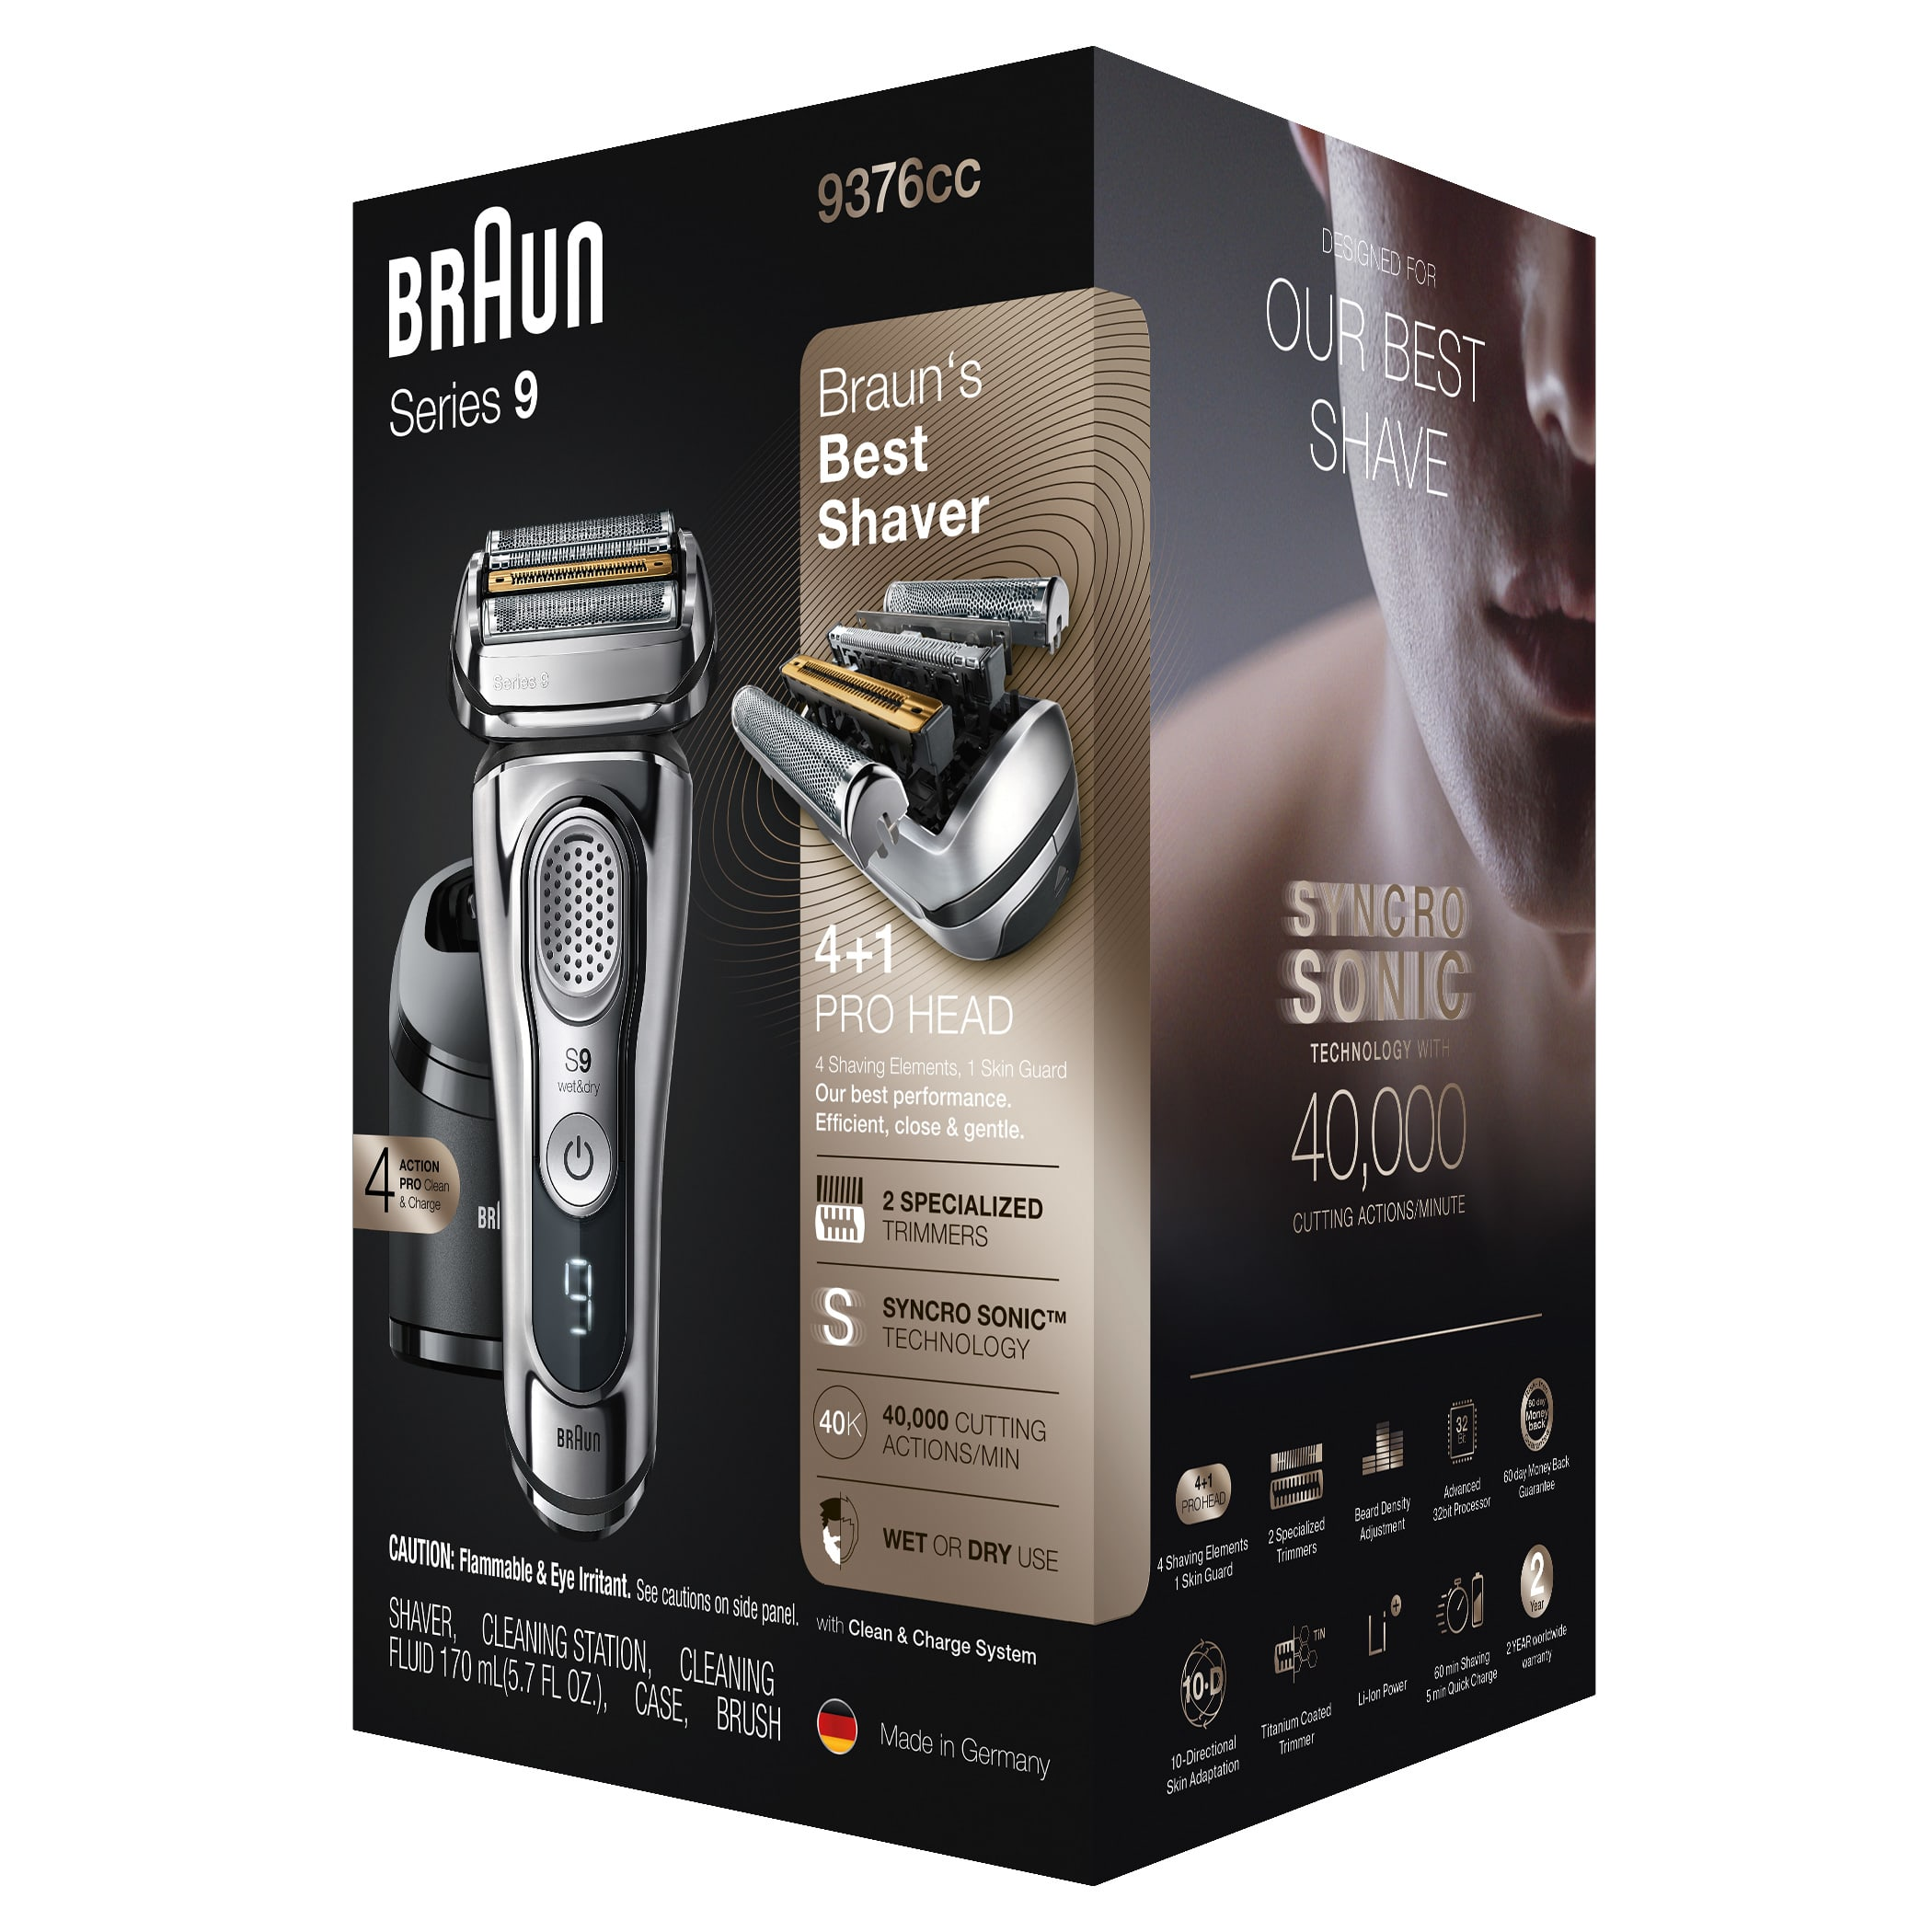 Series 9 9376cc shaver - Packaging